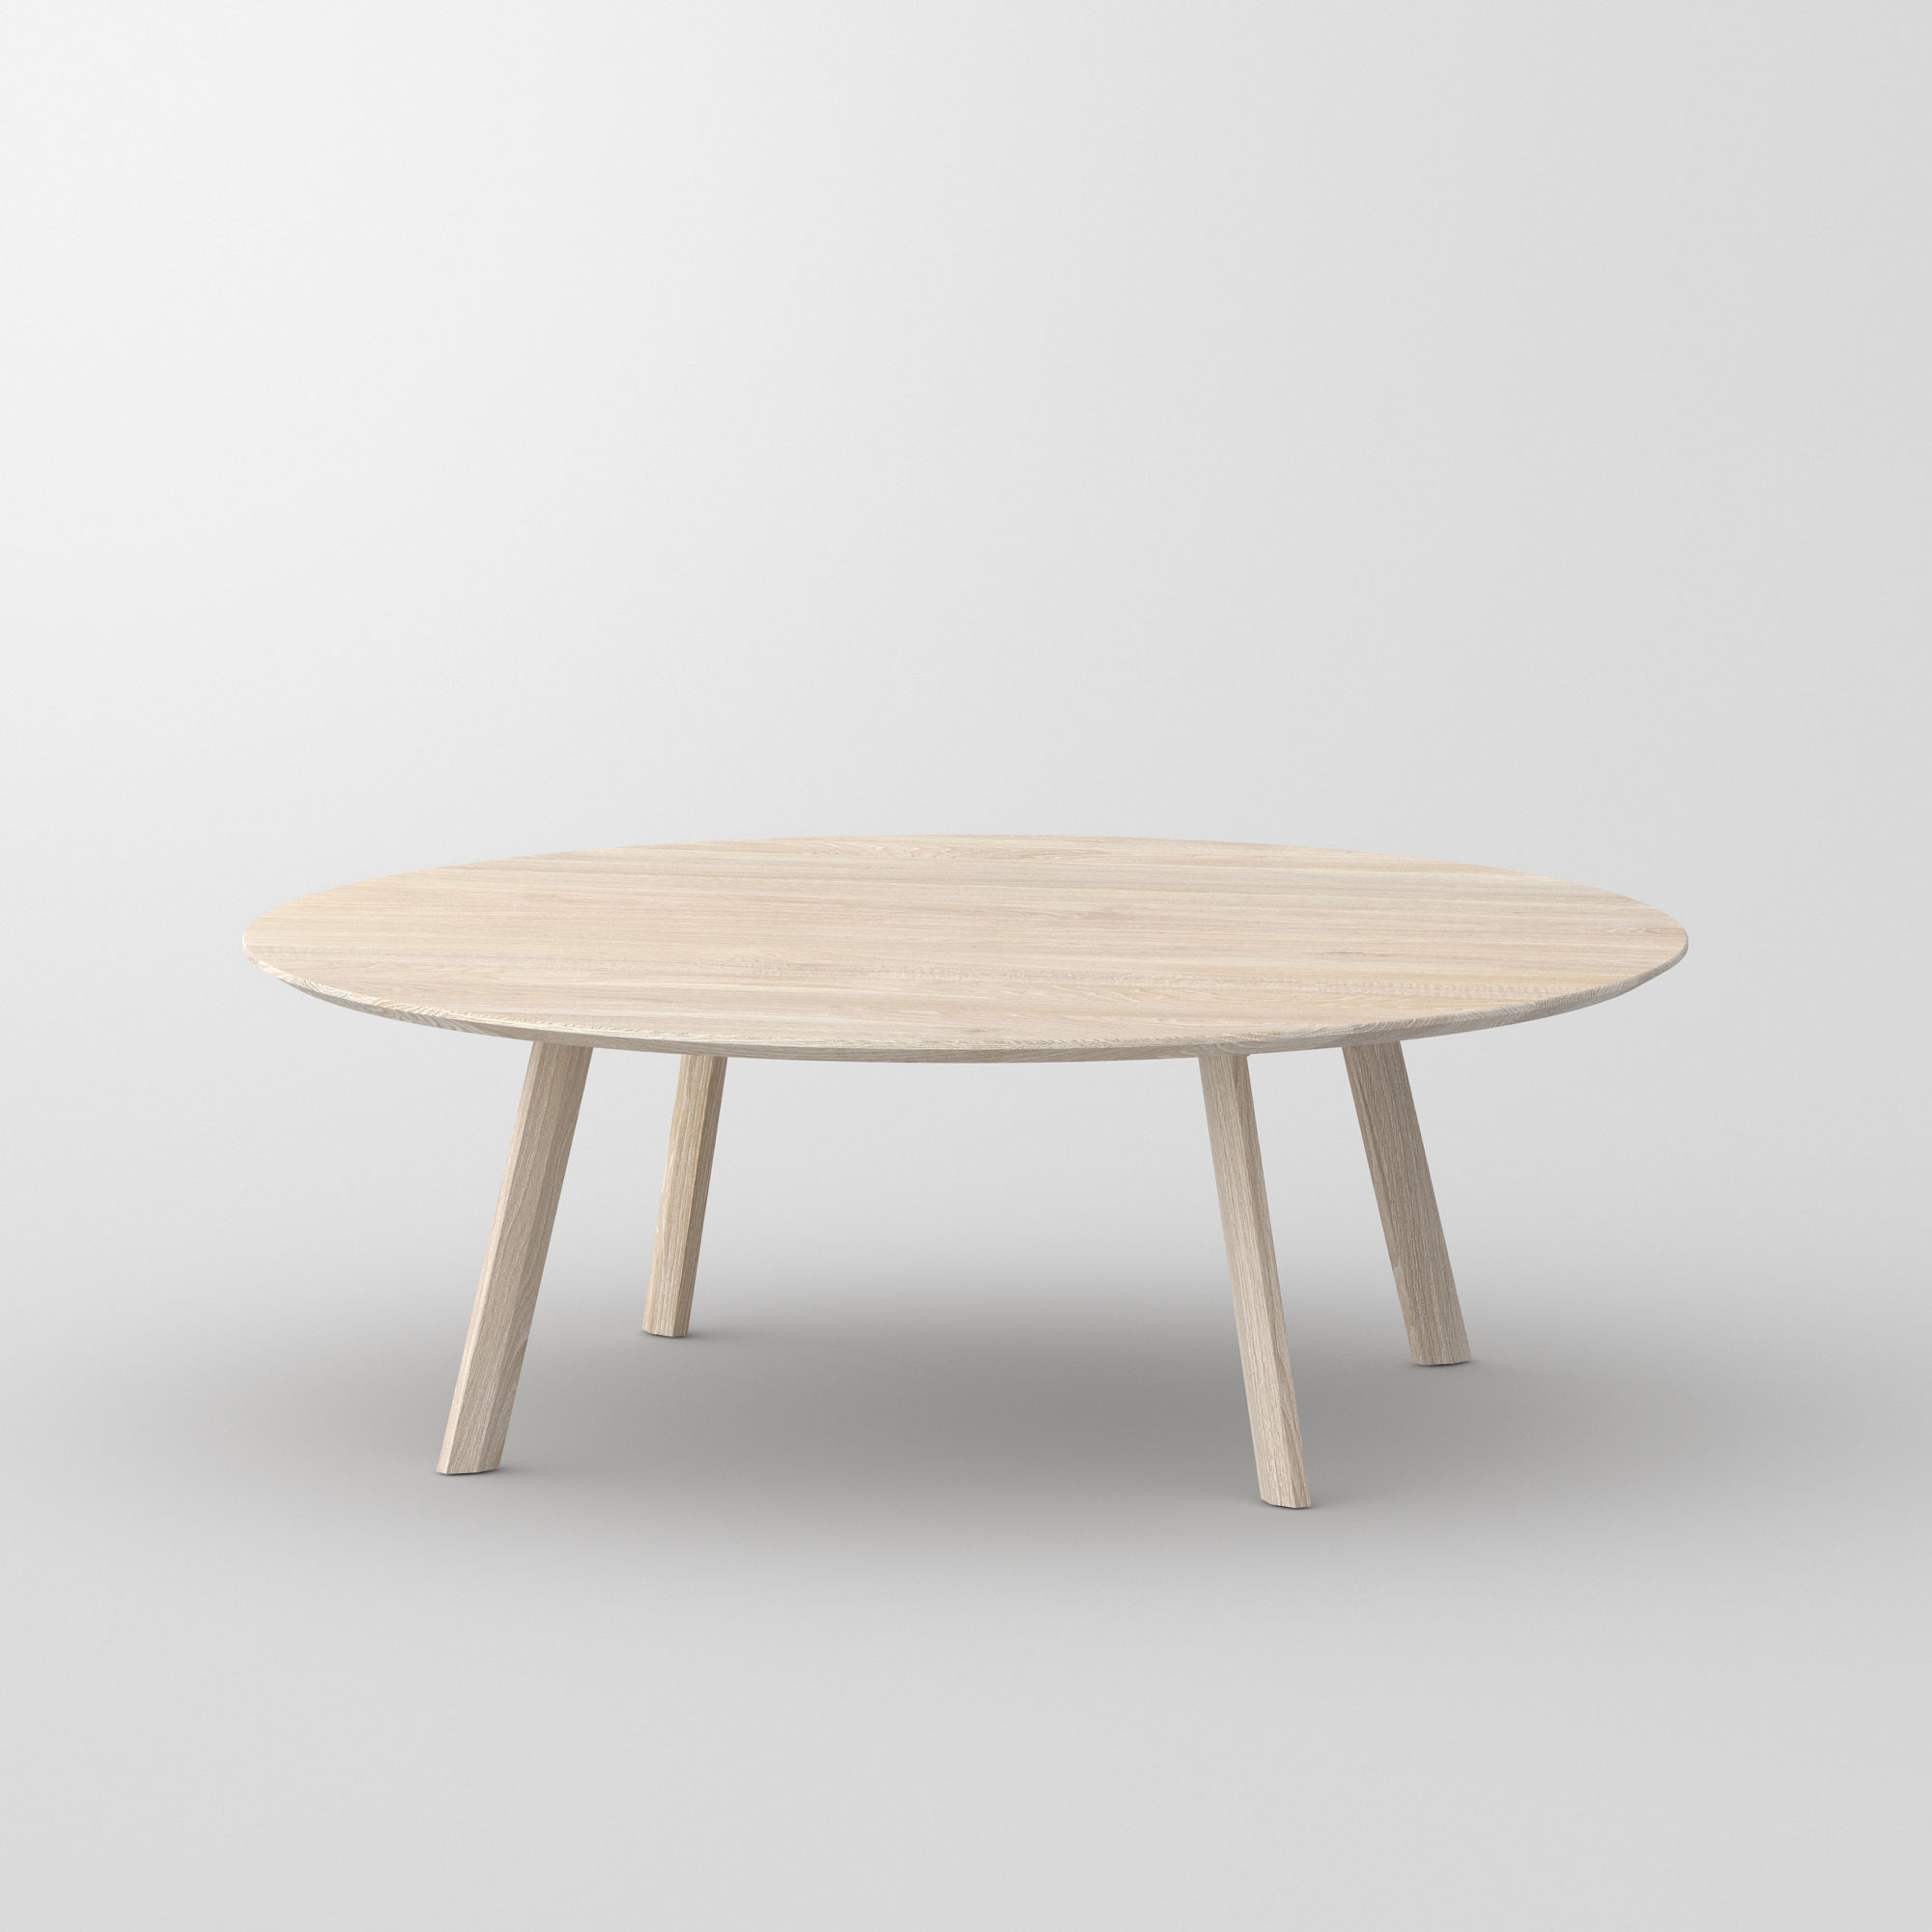 Round Coffee Table RHOMBI ROUND cam2 custom made in solid wood by vitamin design